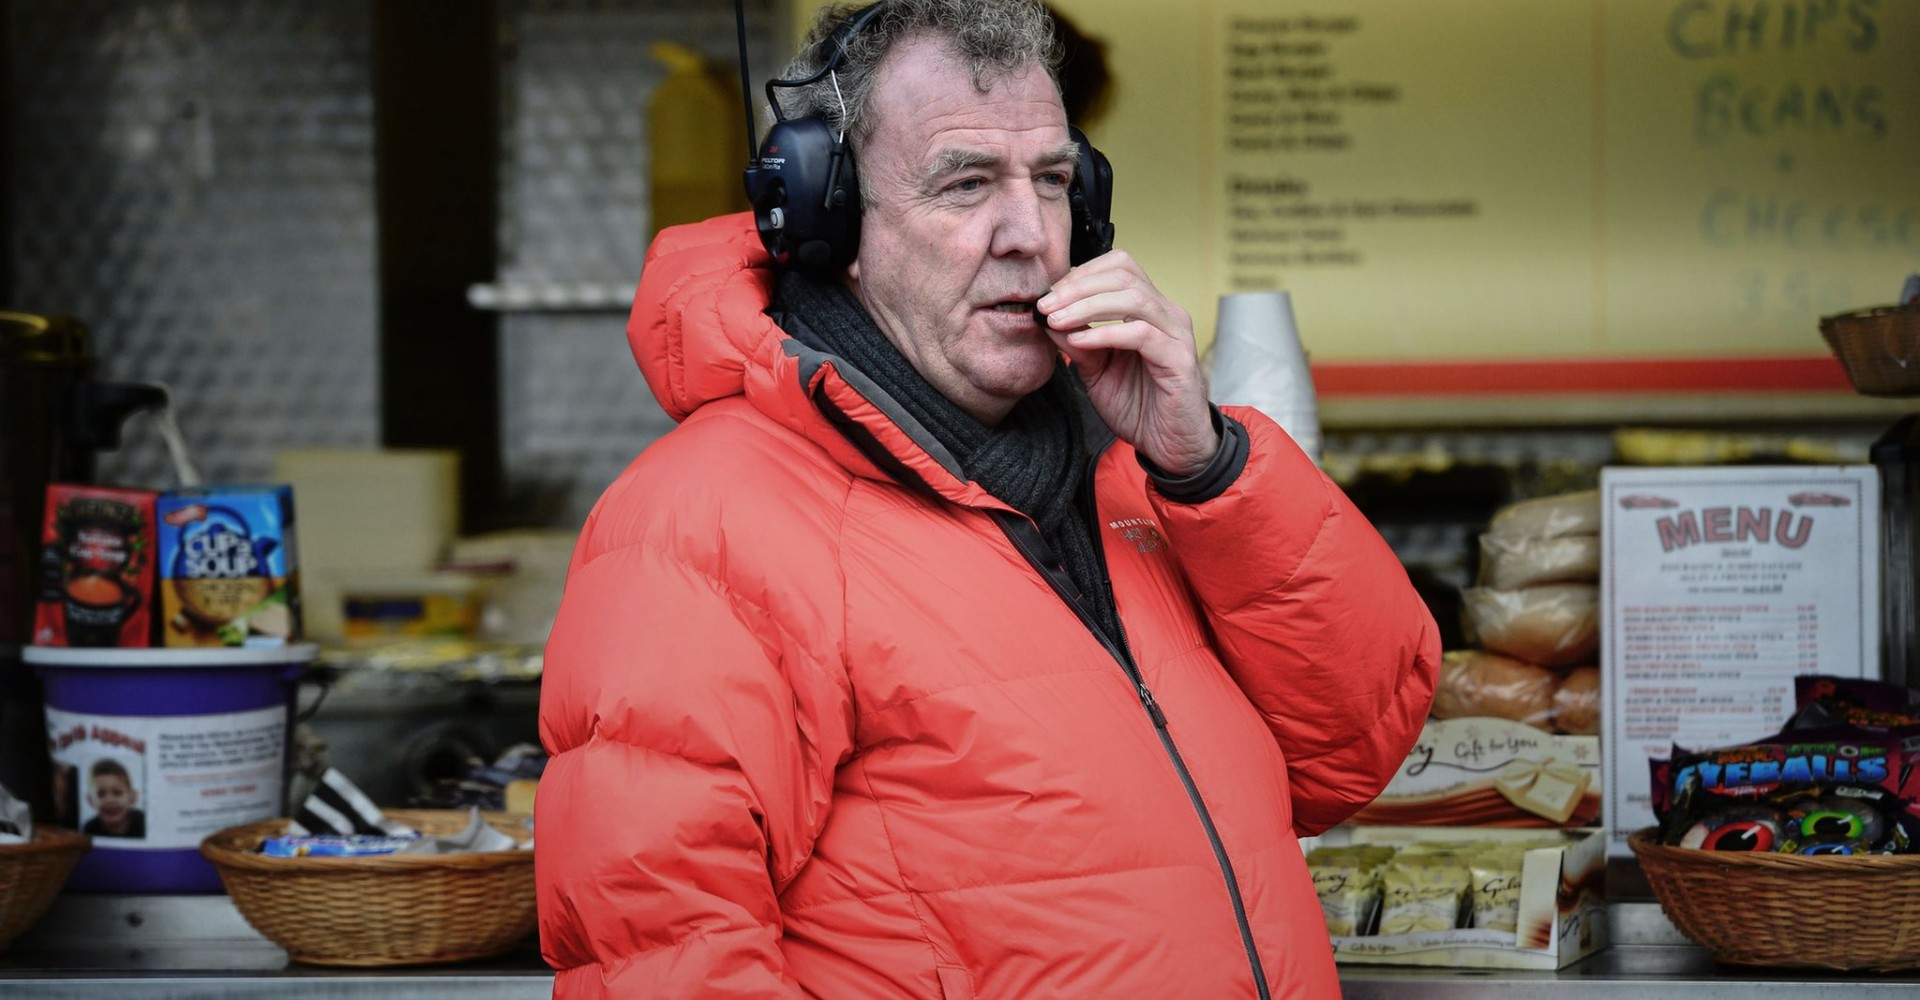 Clarkson 'Could Return To BBC' With Fracas-Proofing Minder